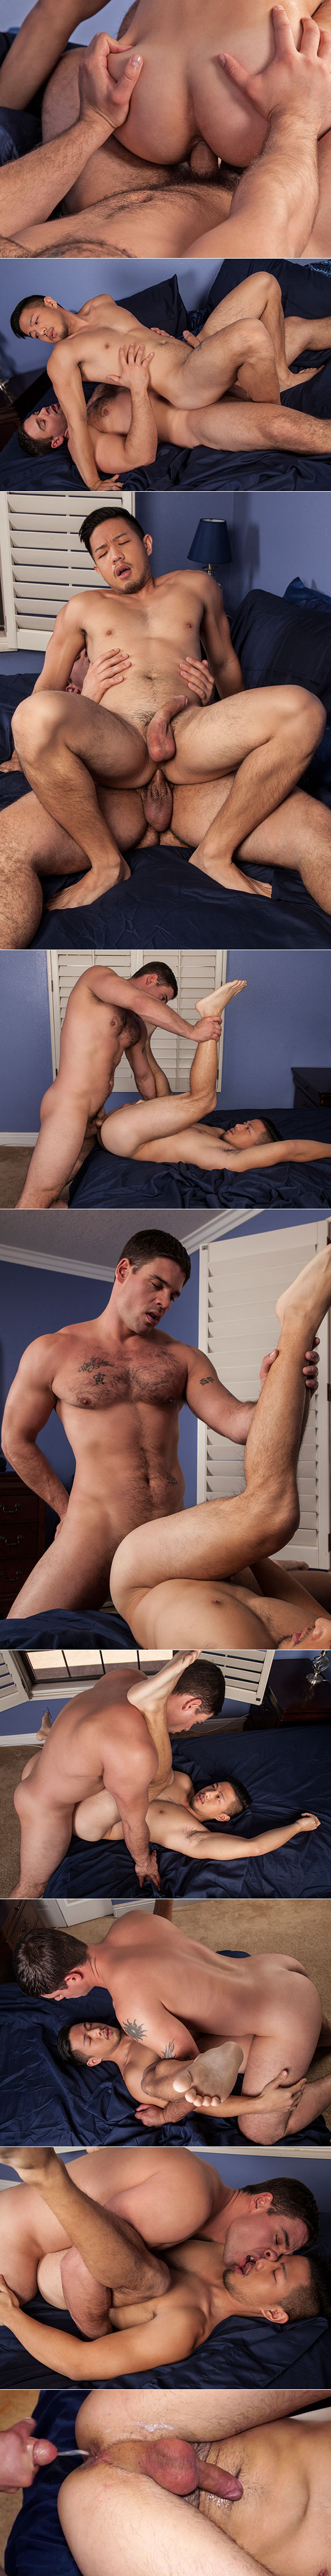 Randy Blue: Derek Atlas makes his bareback debut with Cooper Dang